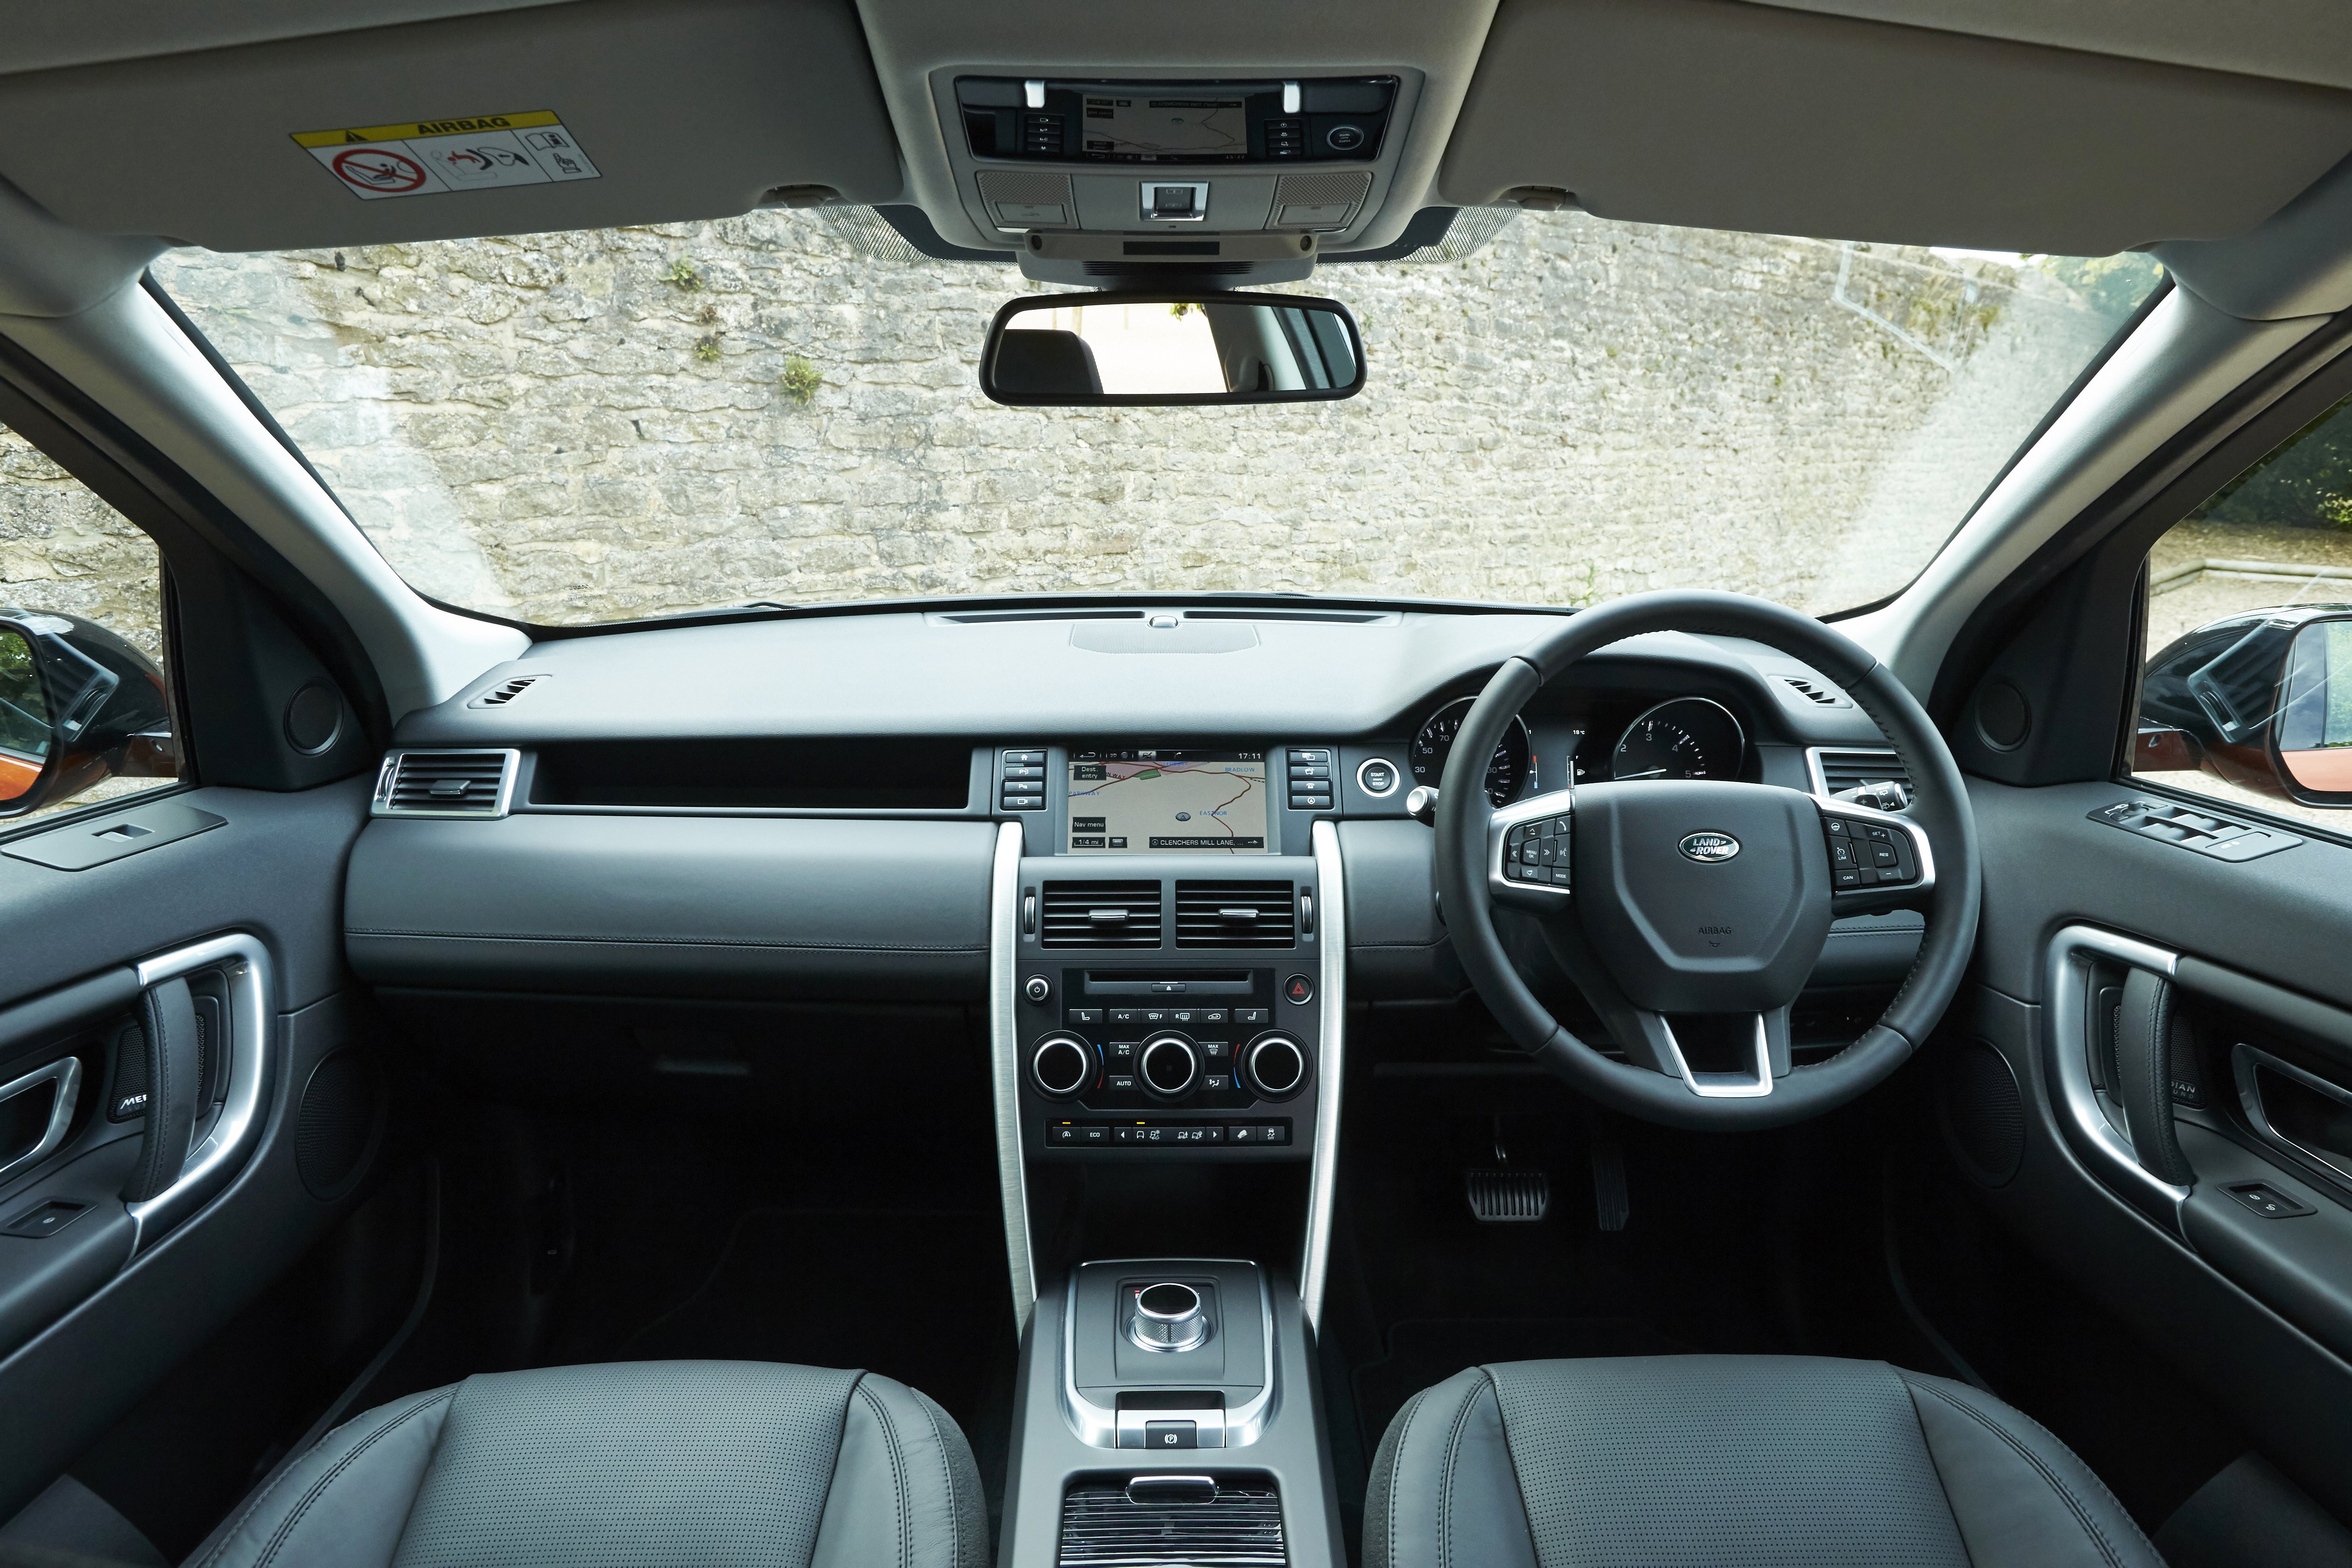 land rover discovery sport interior. Much Of The Cabin Is Trimmed In Dull Grey Plastic Land Rover Discovery Sport Interior D